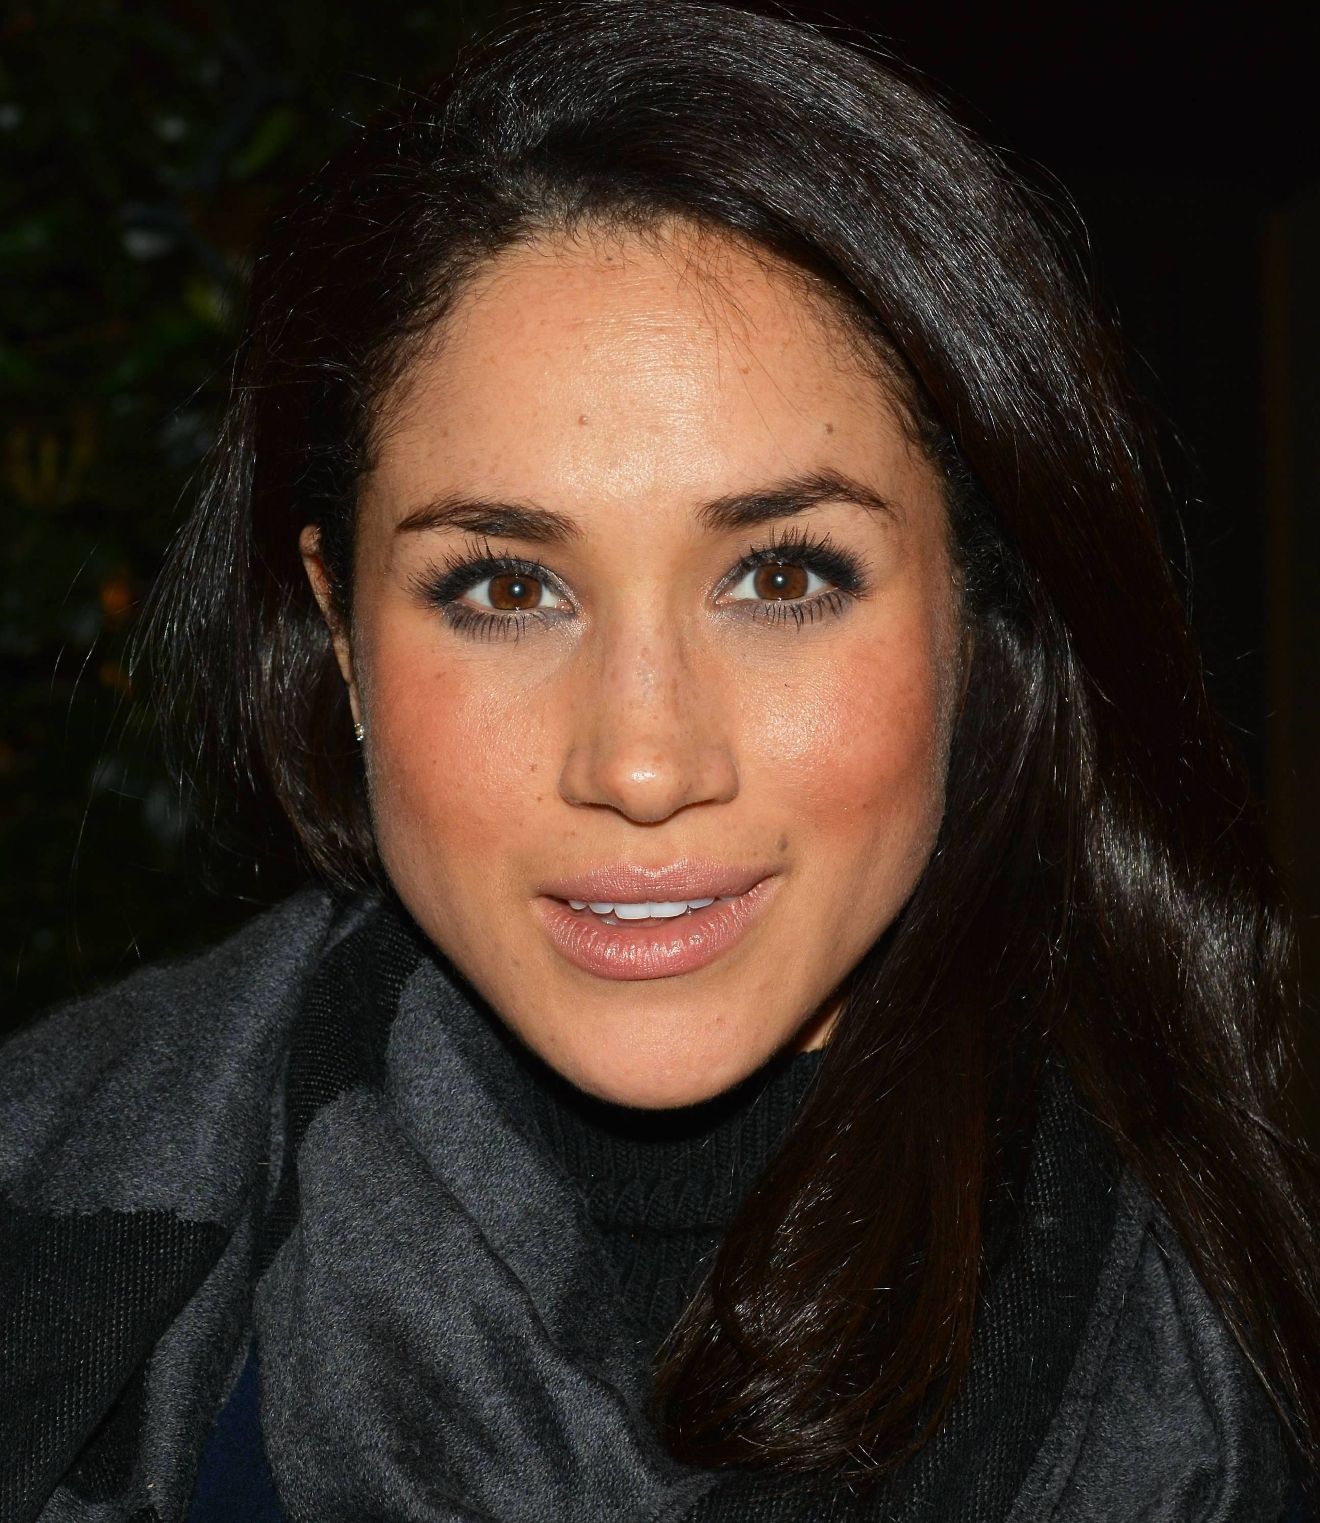 Actress Meghan Markle, who plays Rachel Zane in the hit USA legal drama 'Suits', returns to the Westbury Hotel with The Bram Stoker Medal For Entertainment which she received from the Trinity College Philosophical Society...  Featuring: Meghan Markle Where: Dublin, Ireland When: 14 Nov 2013 Credit: WENN.com